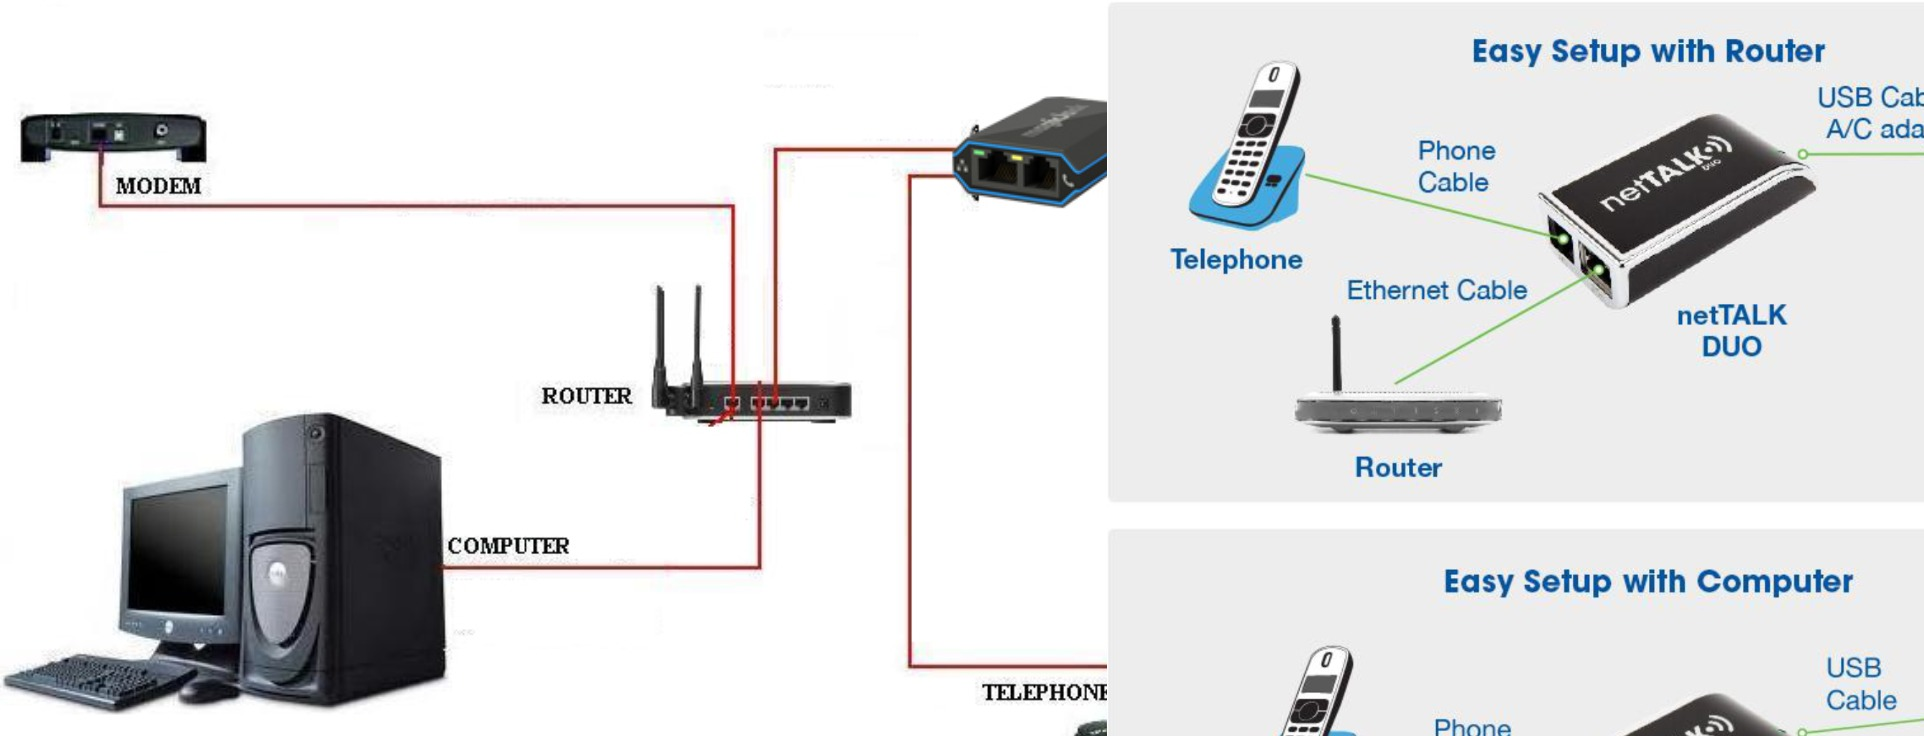 magicjack go vs nettalk duo wifi [which is better?] thevoiphub home phone wiring diagram magicjack go setup vs nettalk duo wifi setup